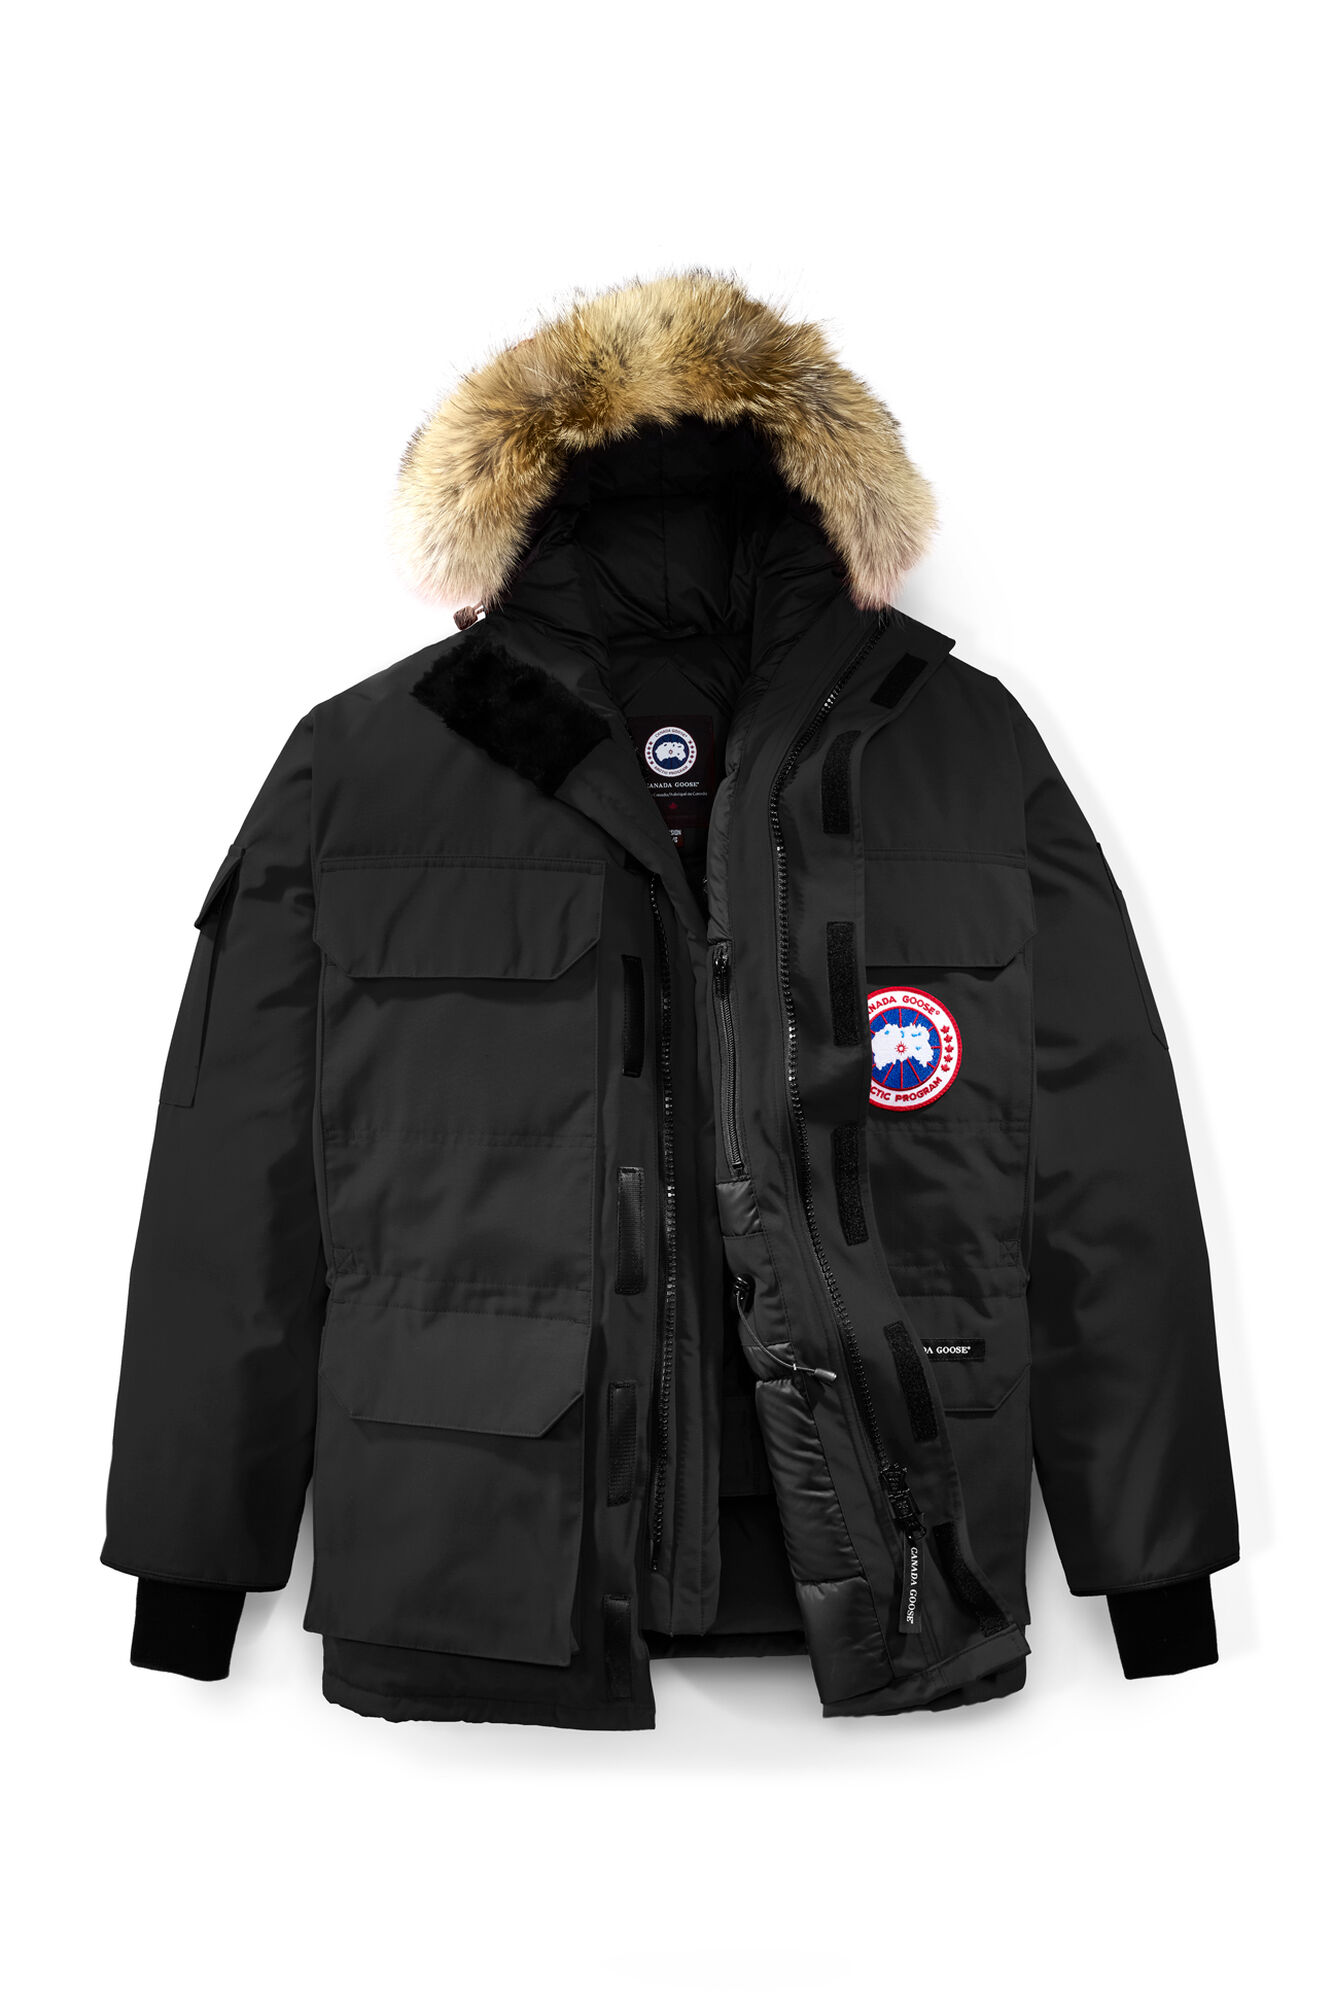 Canada Goose parka replica shop - Men's Arctic Program Expedition Parka | Canada Goose?